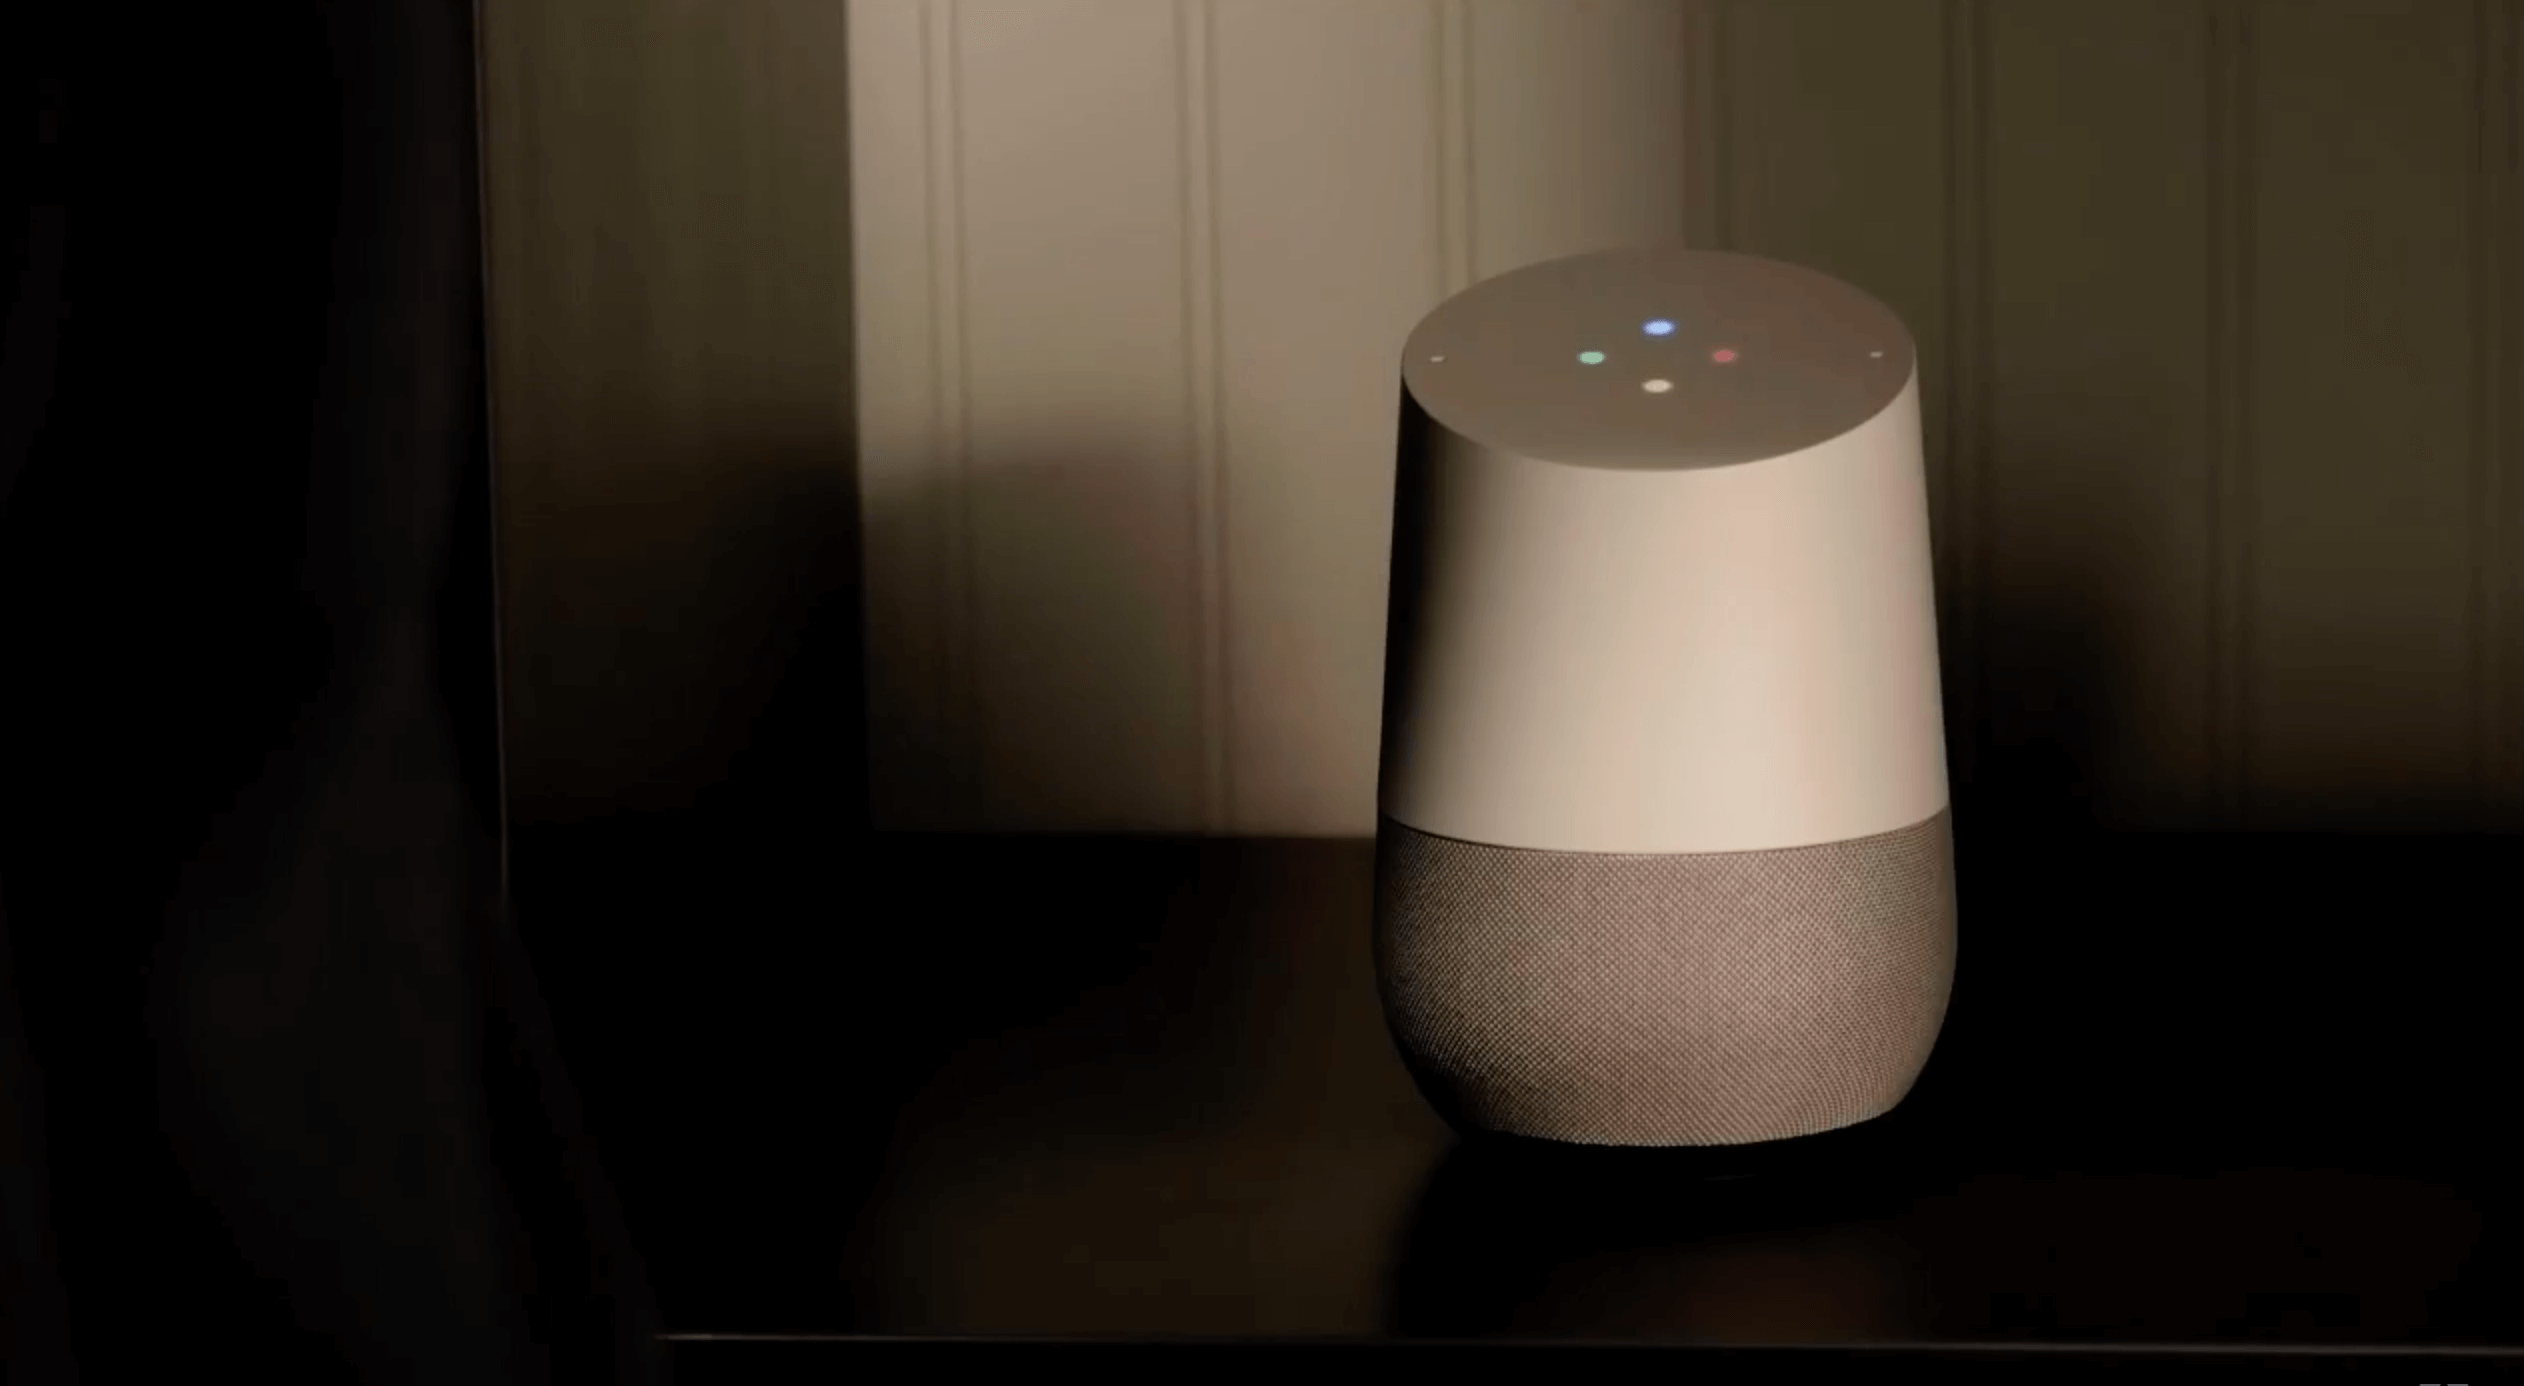 Google Home mit Google Assistant ab Sommer in Deutschland